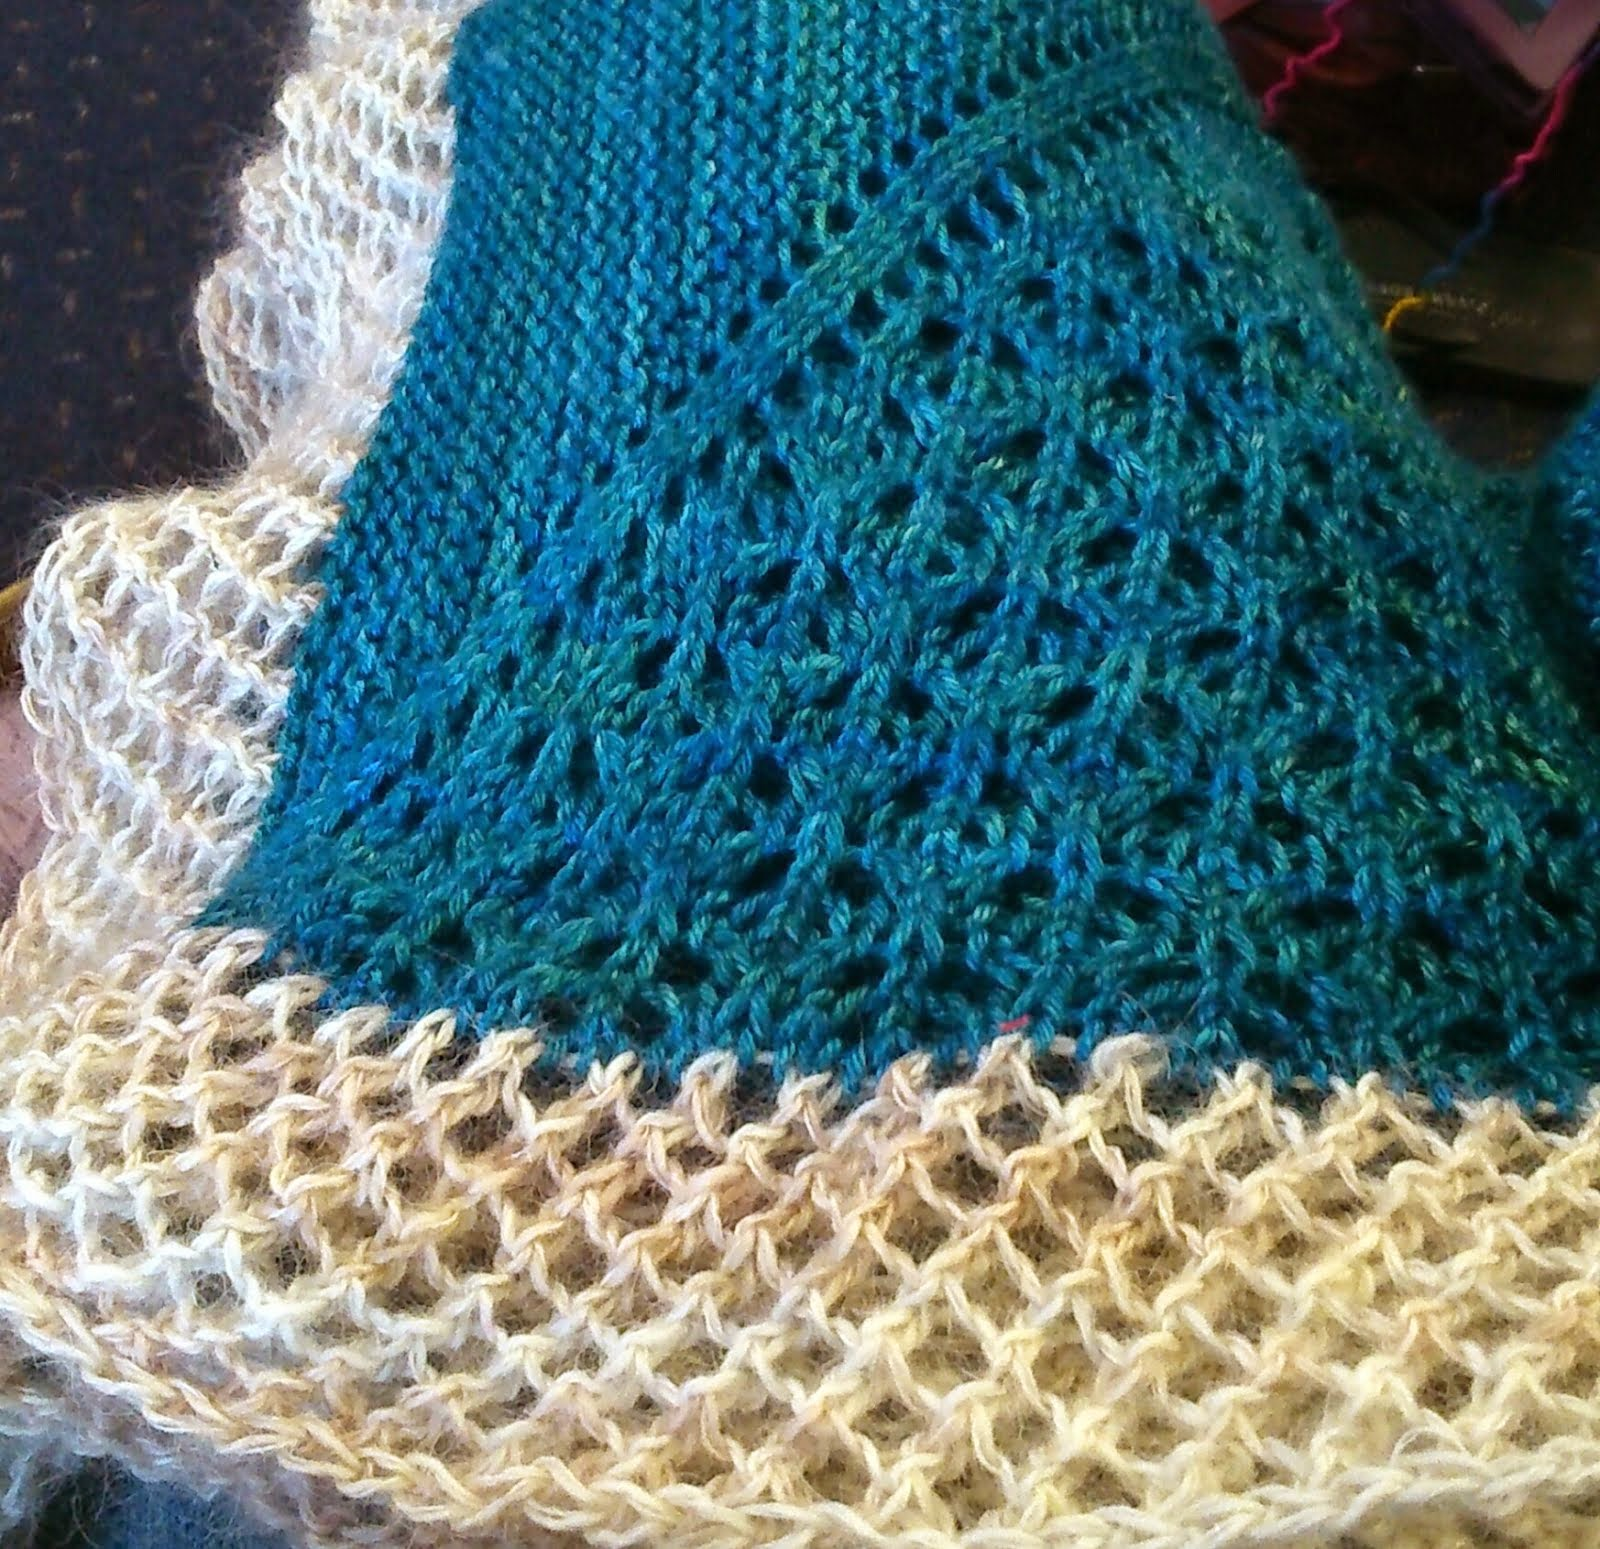 Mistea crafts: A lot of Knitting and little Unpicking!